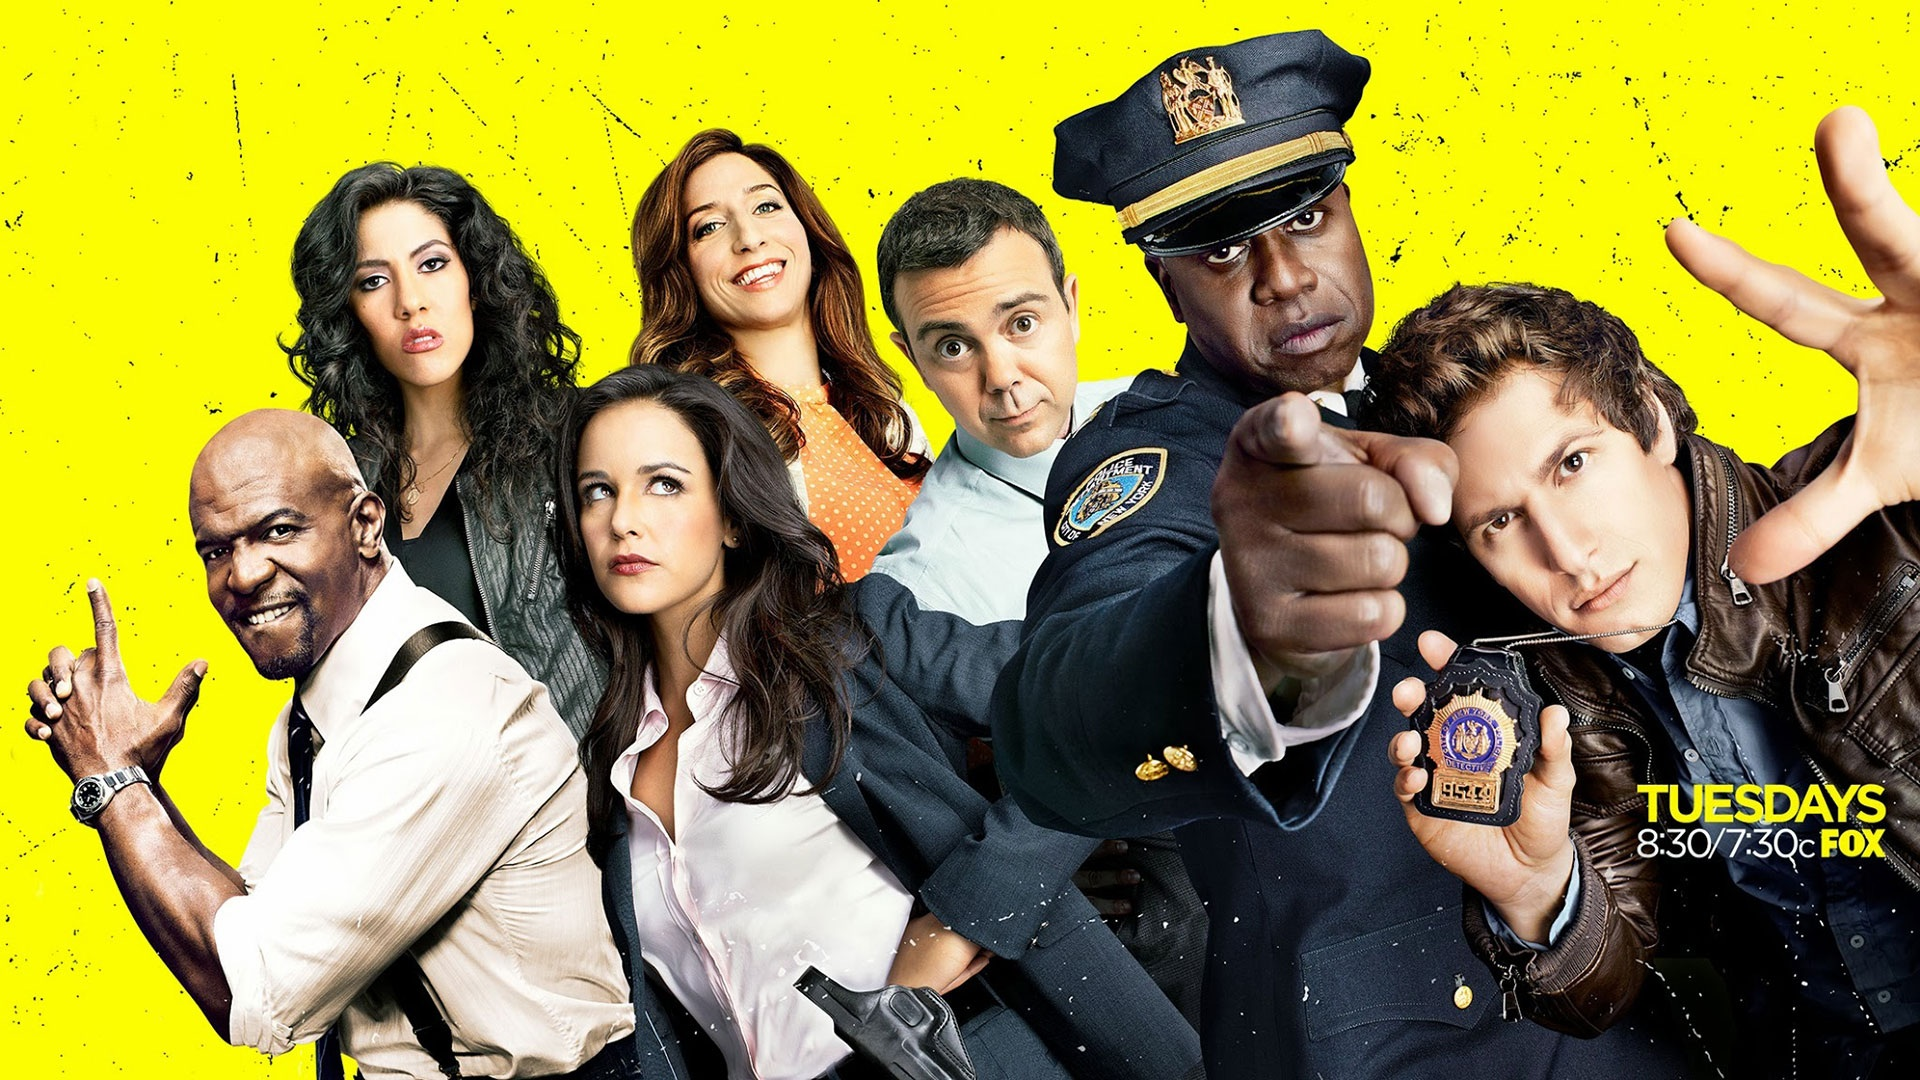 the brooklyn nine Welcome to the official brooklyn nine-nine youtube channel brooklyn nine -nine at 8:30/7:30c on fox brooklyn nine-nine fo.